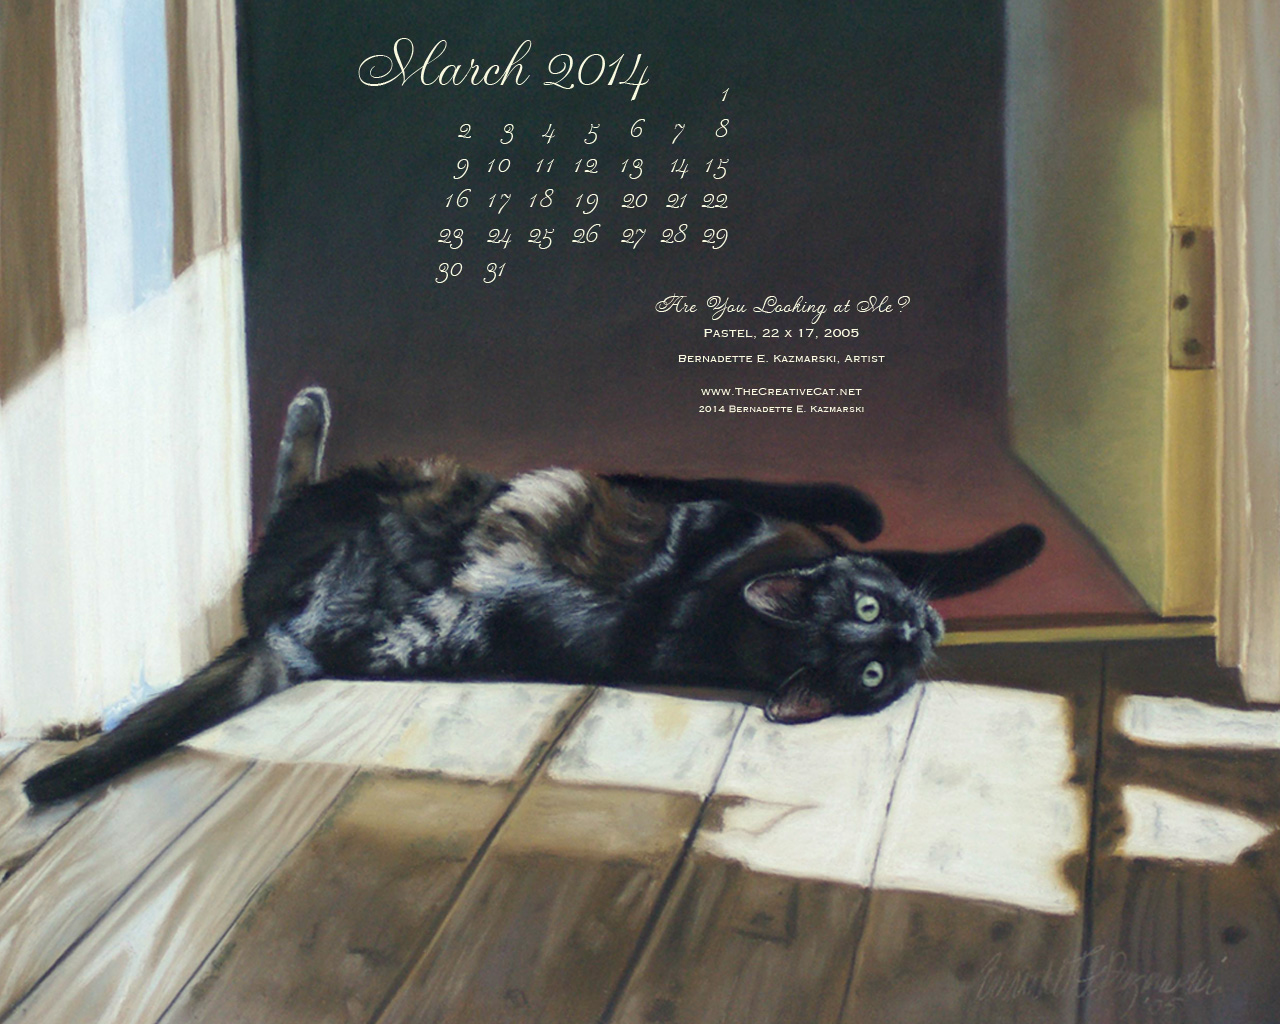 """Are You Looking At Me"" Desktop Calendar for March 2014."